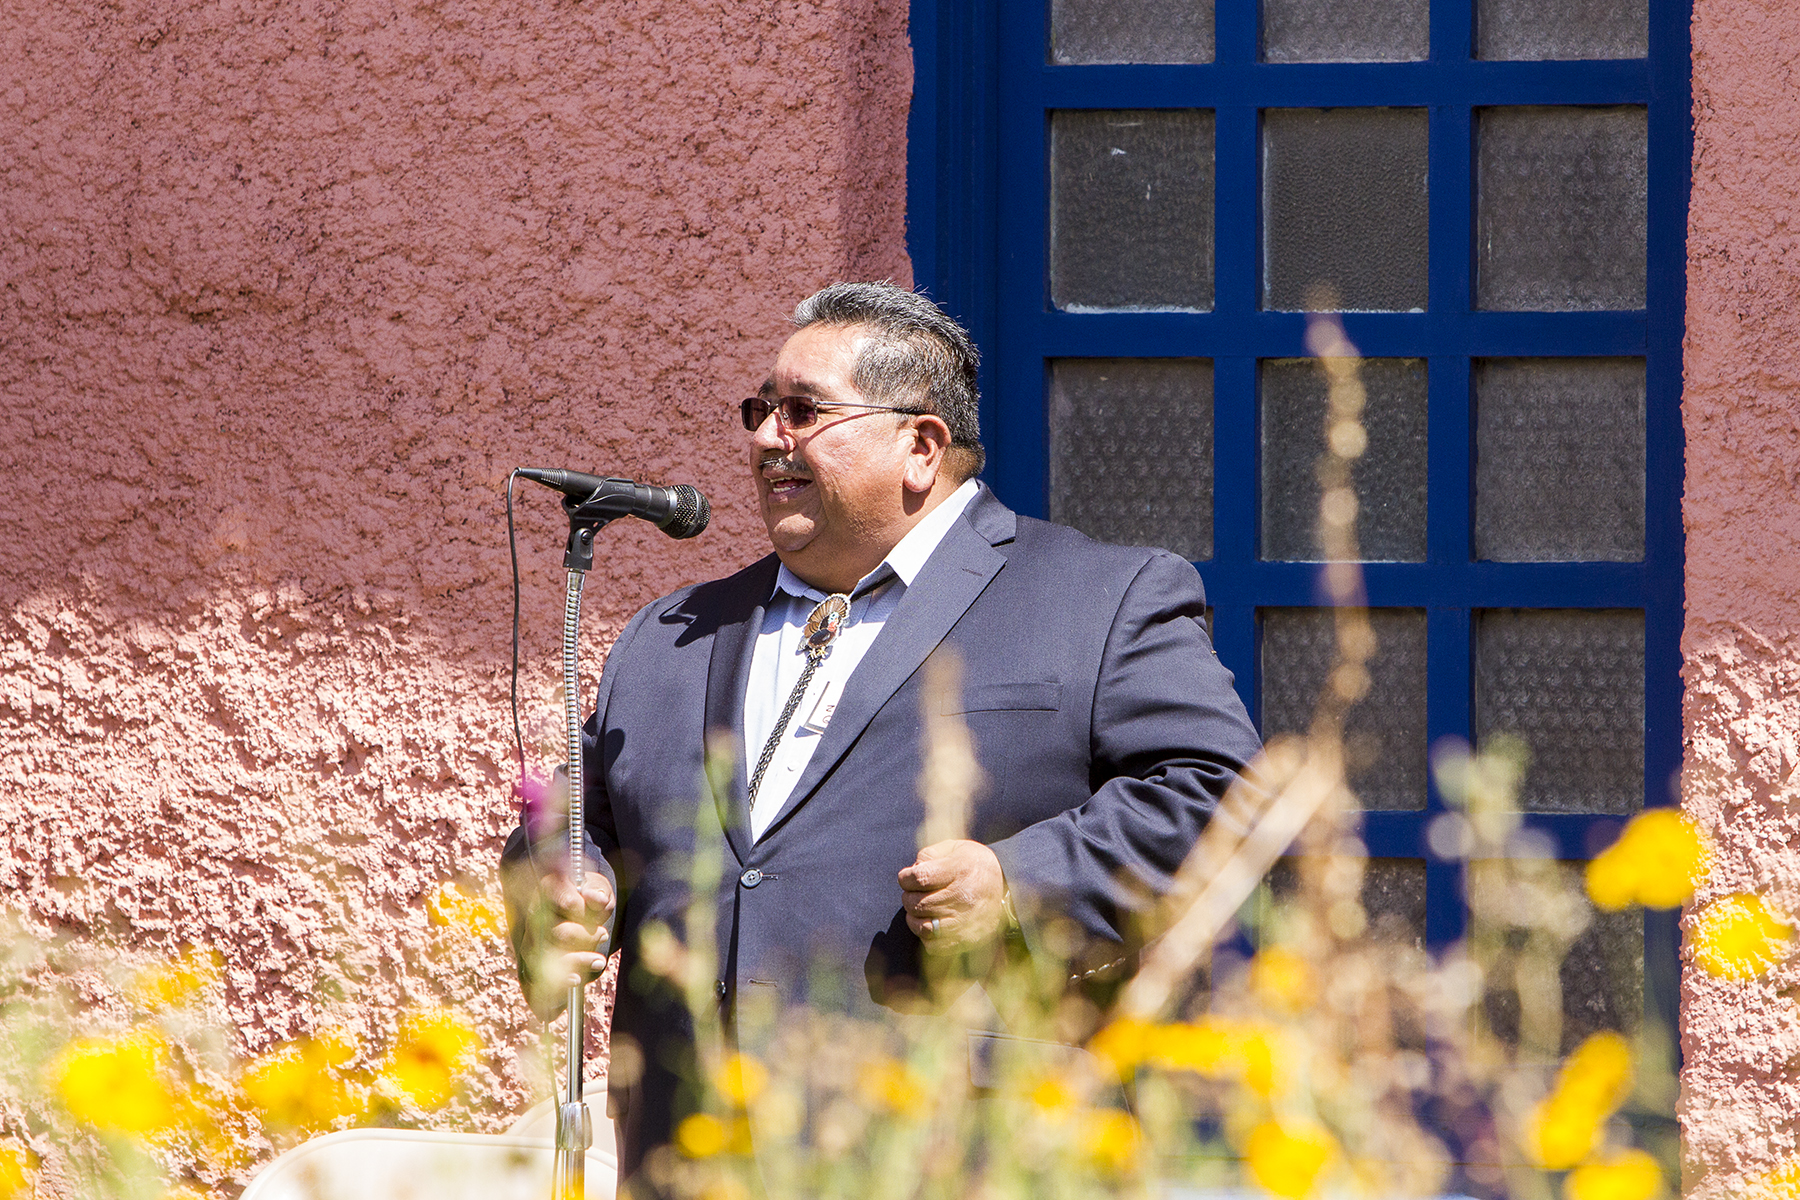 Zuni Pueblo Governor Val Panteah addressing the crowd in the courtyard.